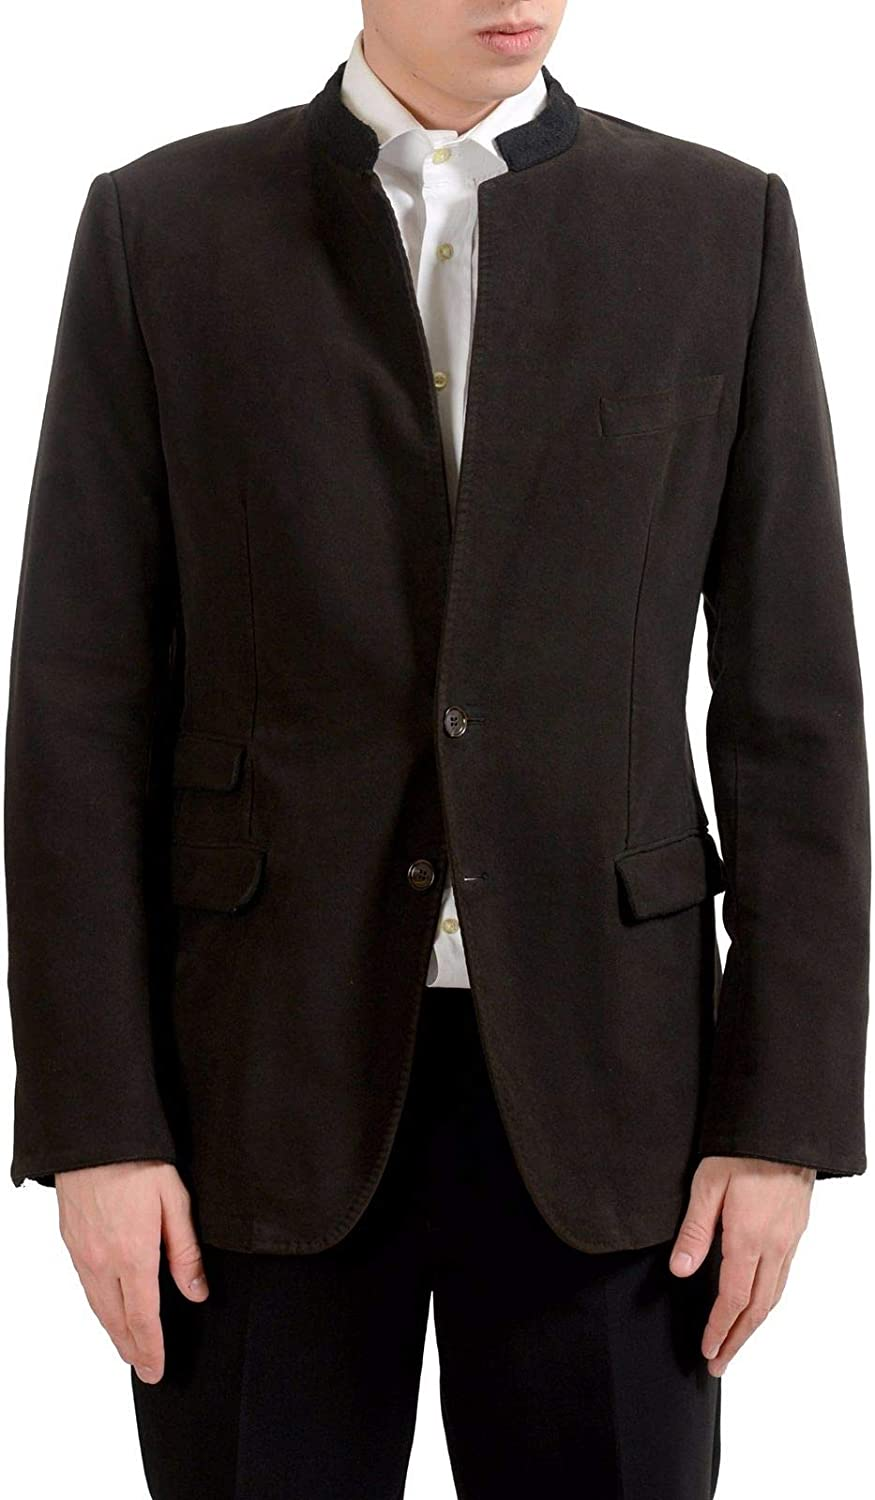 Dolce Gabbana Men's Brown Two Button Sport Blazer 42 Cheap sale I Challenge the lowest price of Japan US Coat